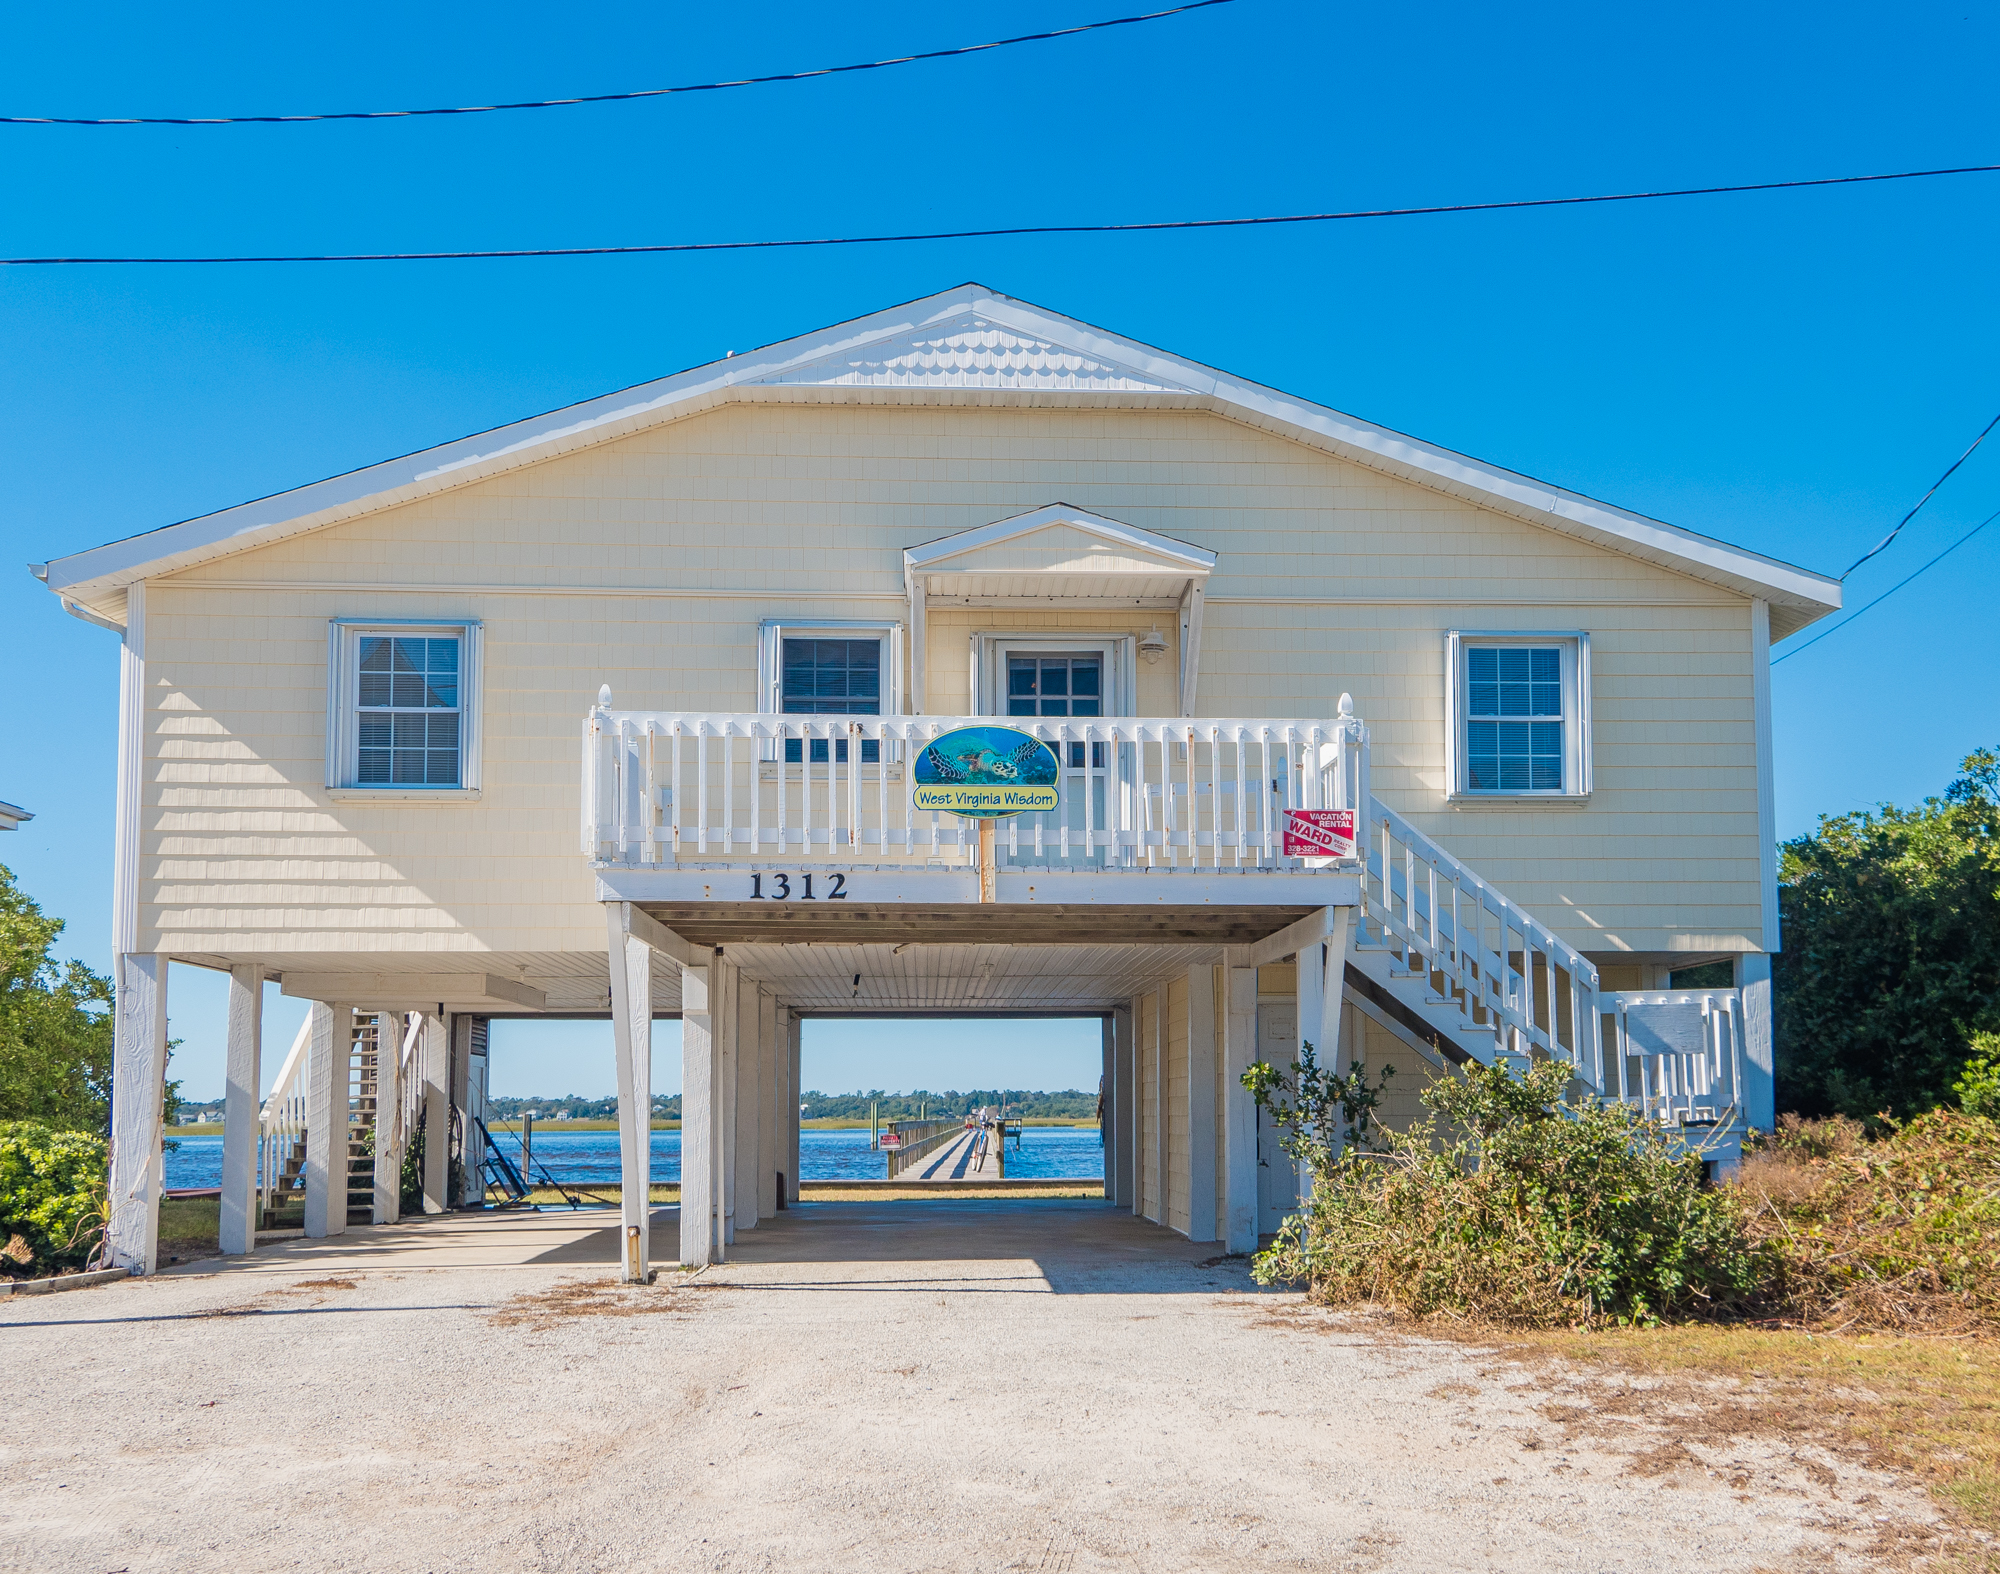 Single Family Home for Sale at Classic Soundfront Cottage 1312 Carolina Blvd Topsail Beach, North Carolina, 28445 United States